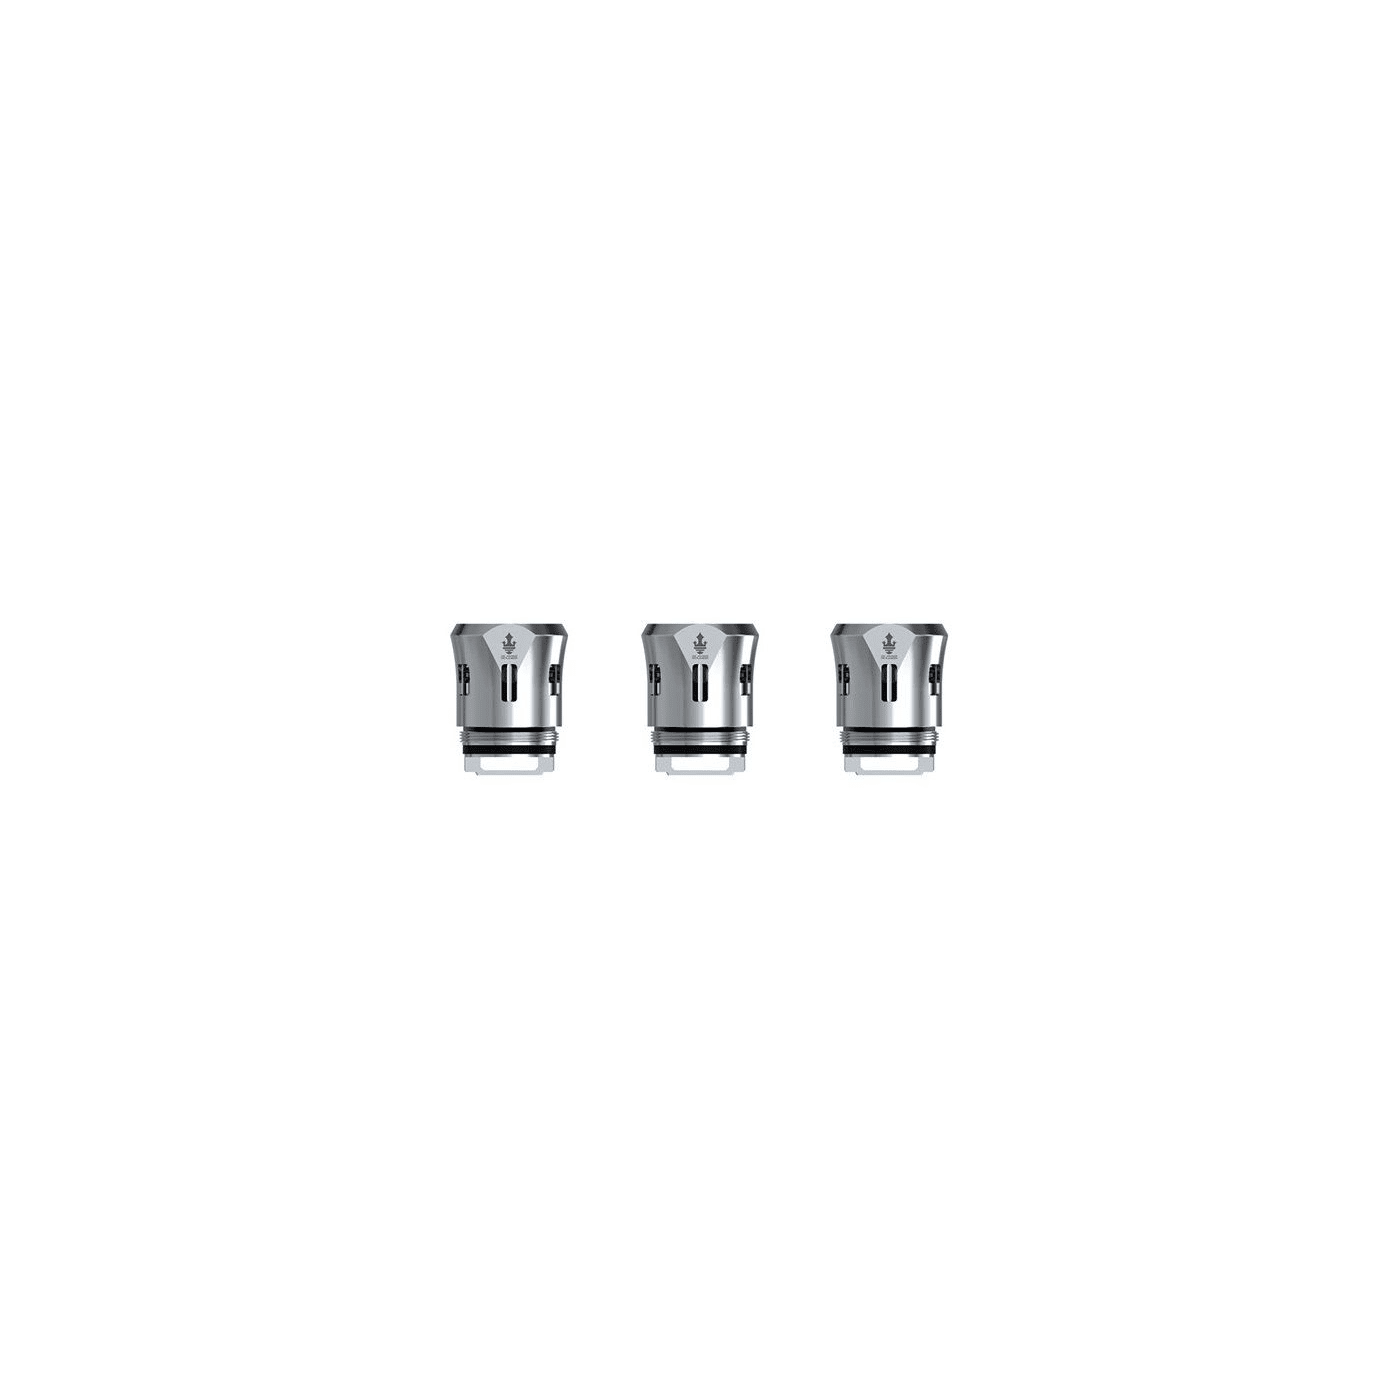 Smok TFV12 Prince Triple Mesh Replacement Coil - 3 Pack